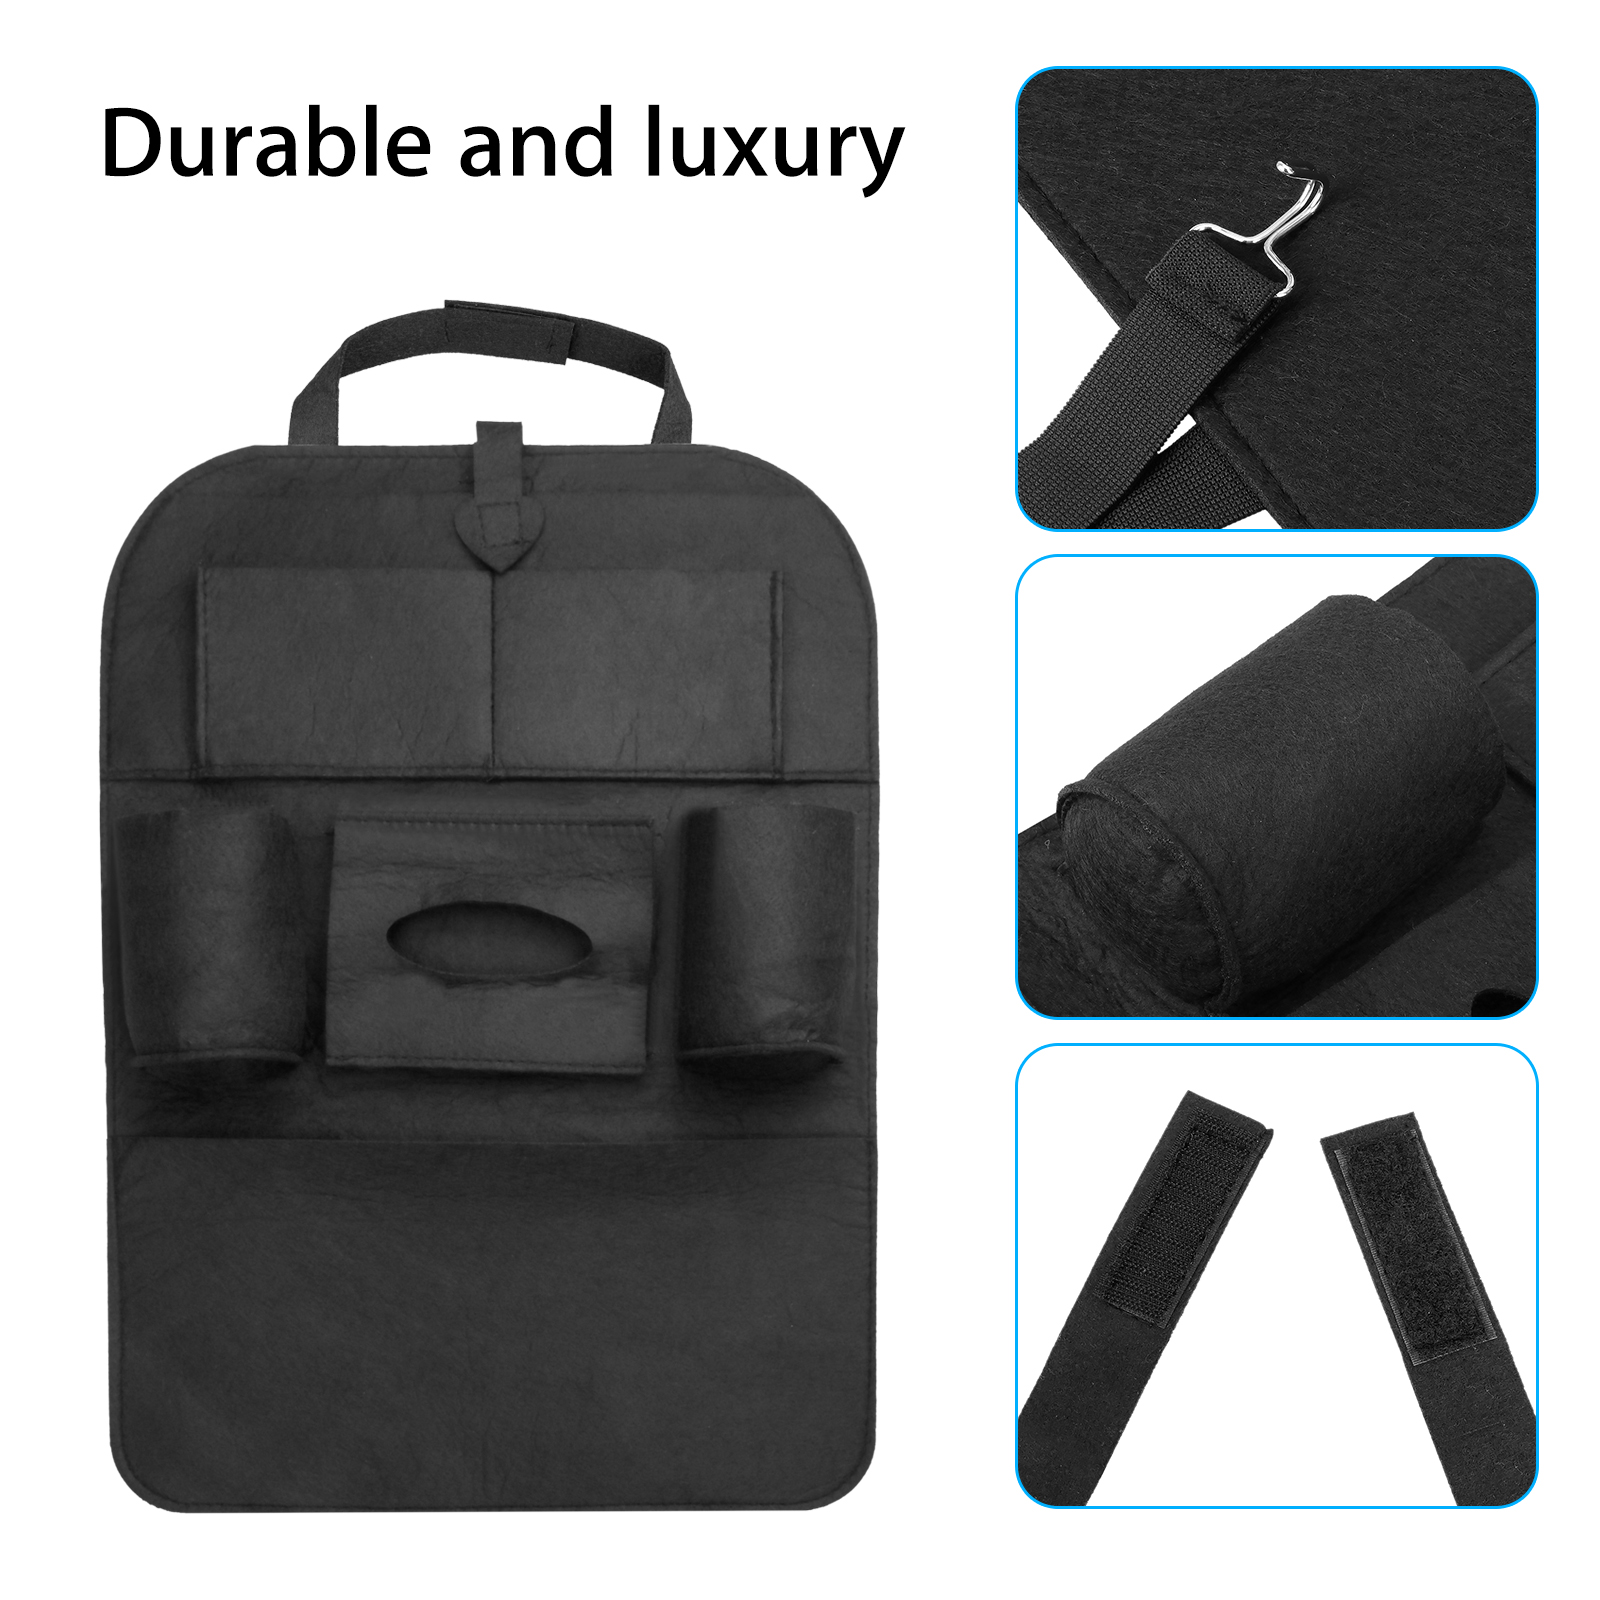 Auto Organizer Tablet Car Seat Organizer Auto Seat Back Organizer Multi Pocket Travel Sundry Hanging Storage Bag For Ipad Tablet Bottle Drink Tissue Box Toys Vehicles